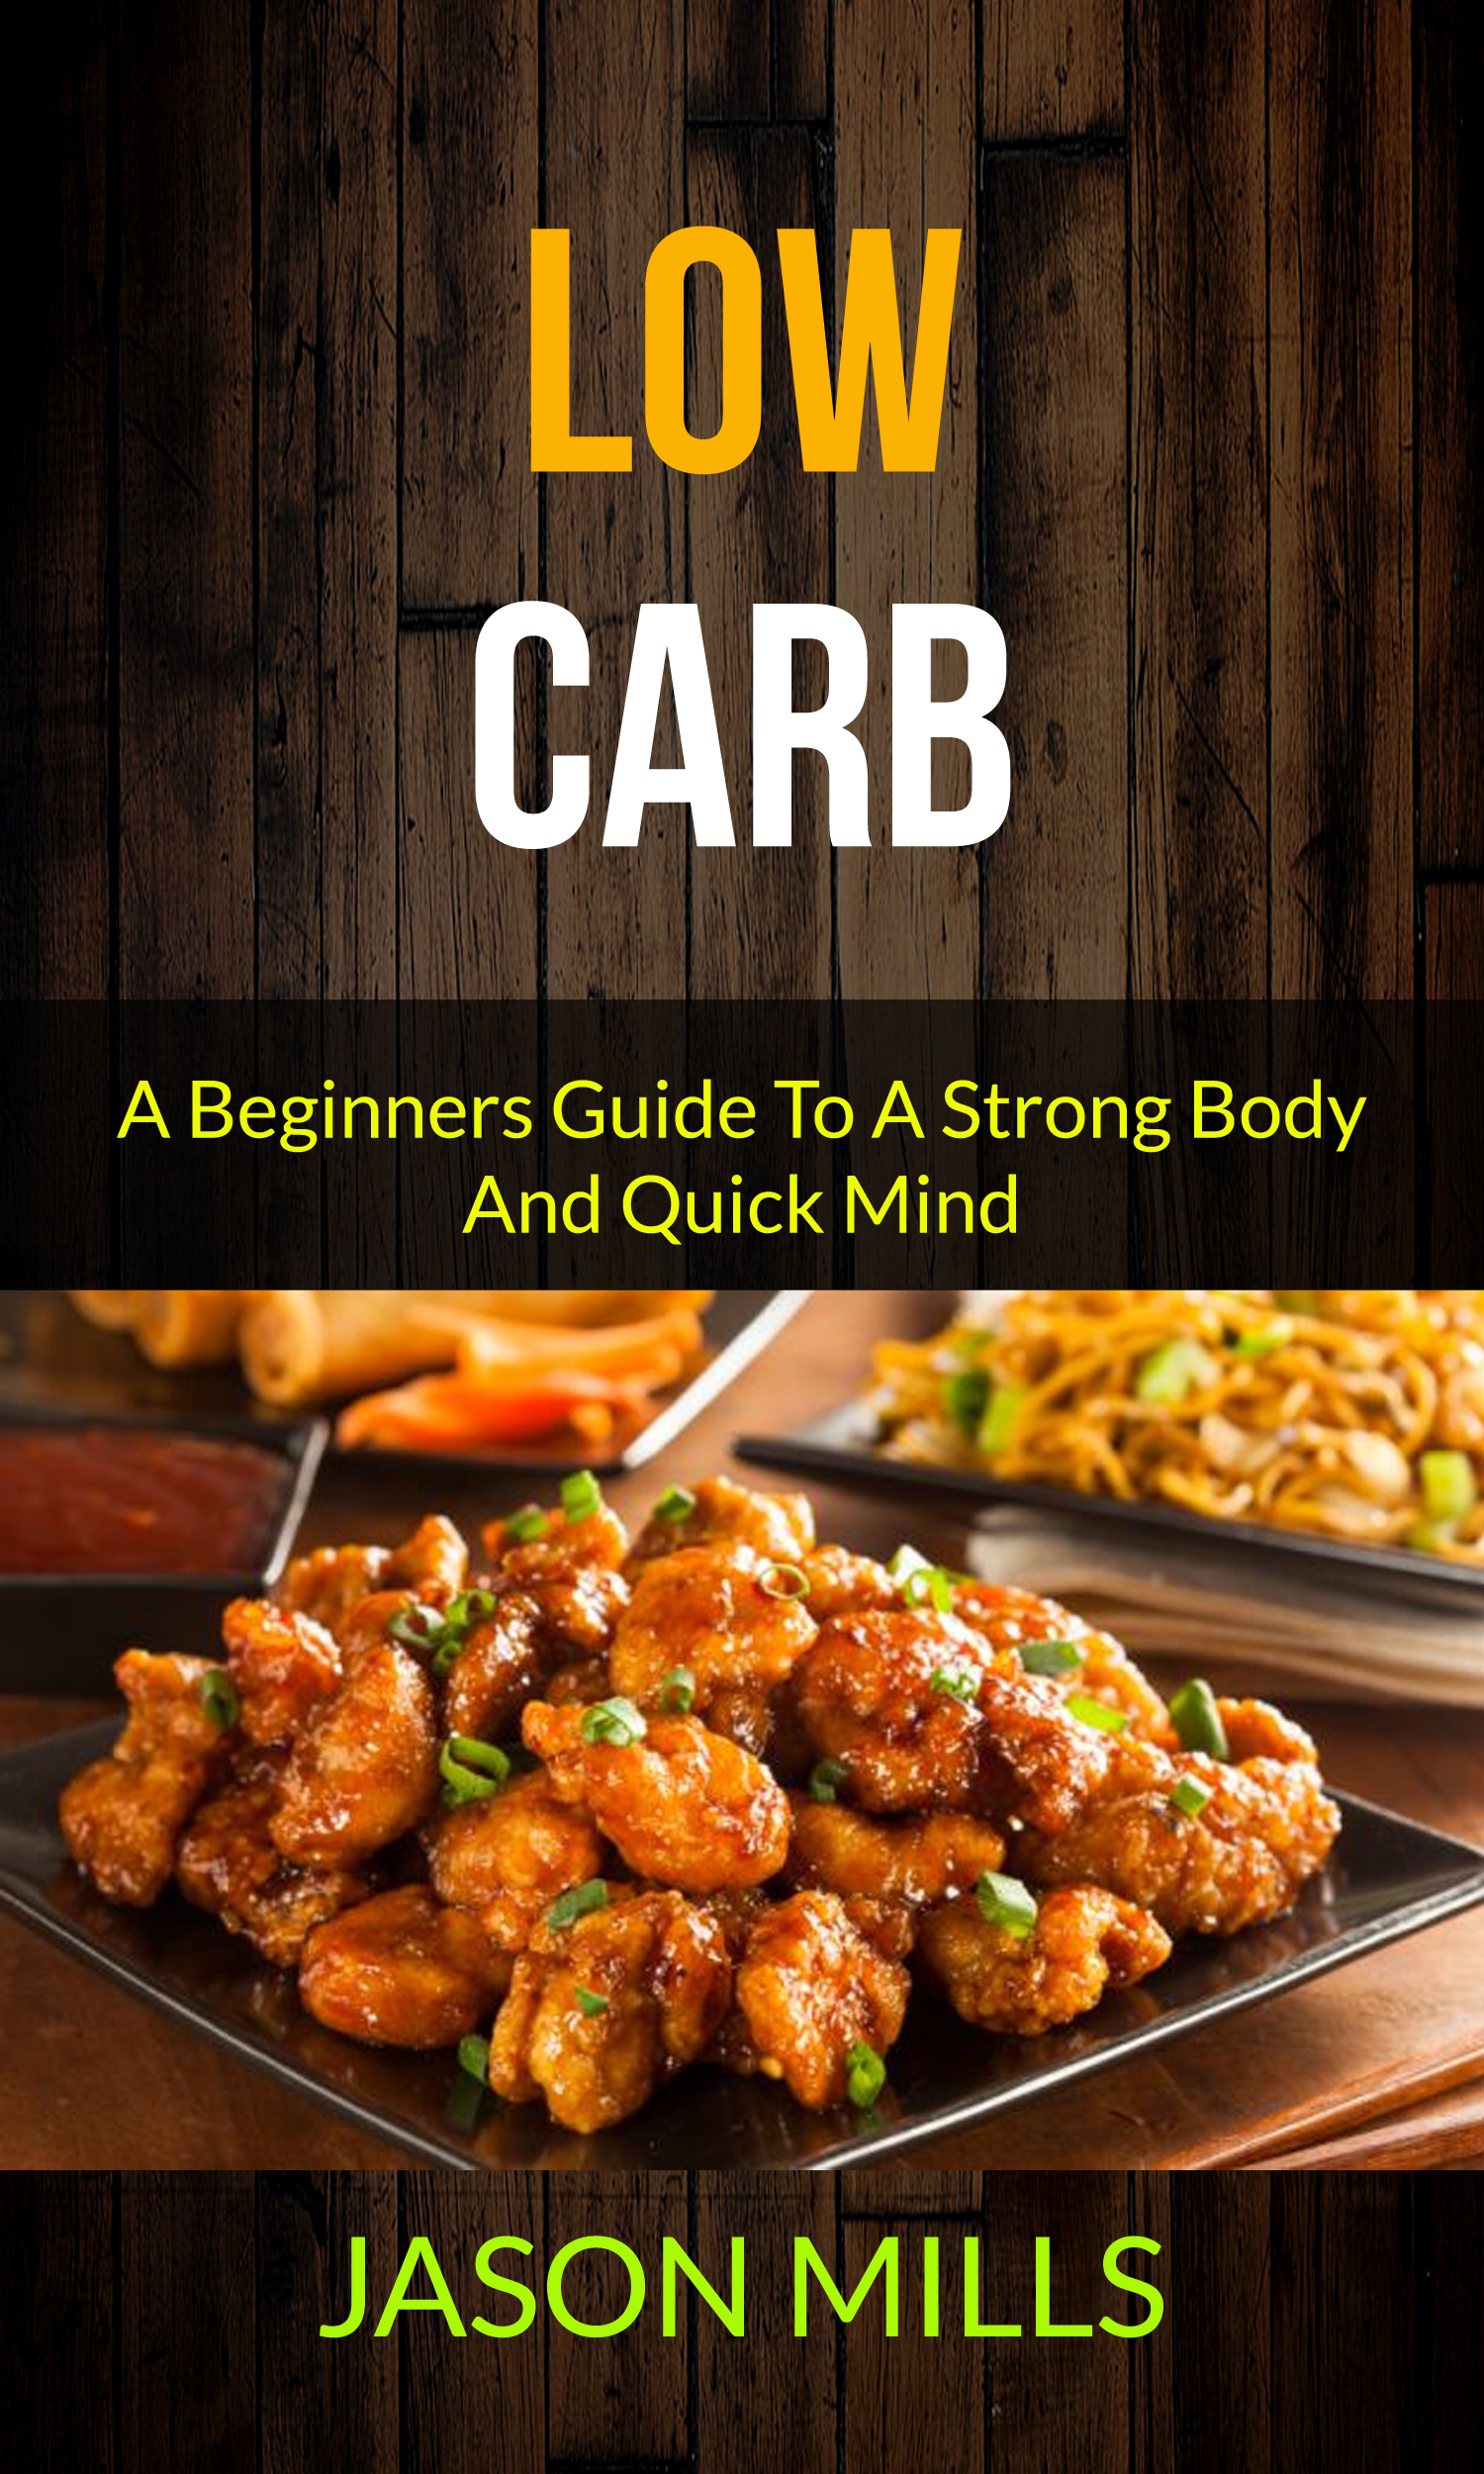 Low carb: a beginners guide to a strong body and quick mind